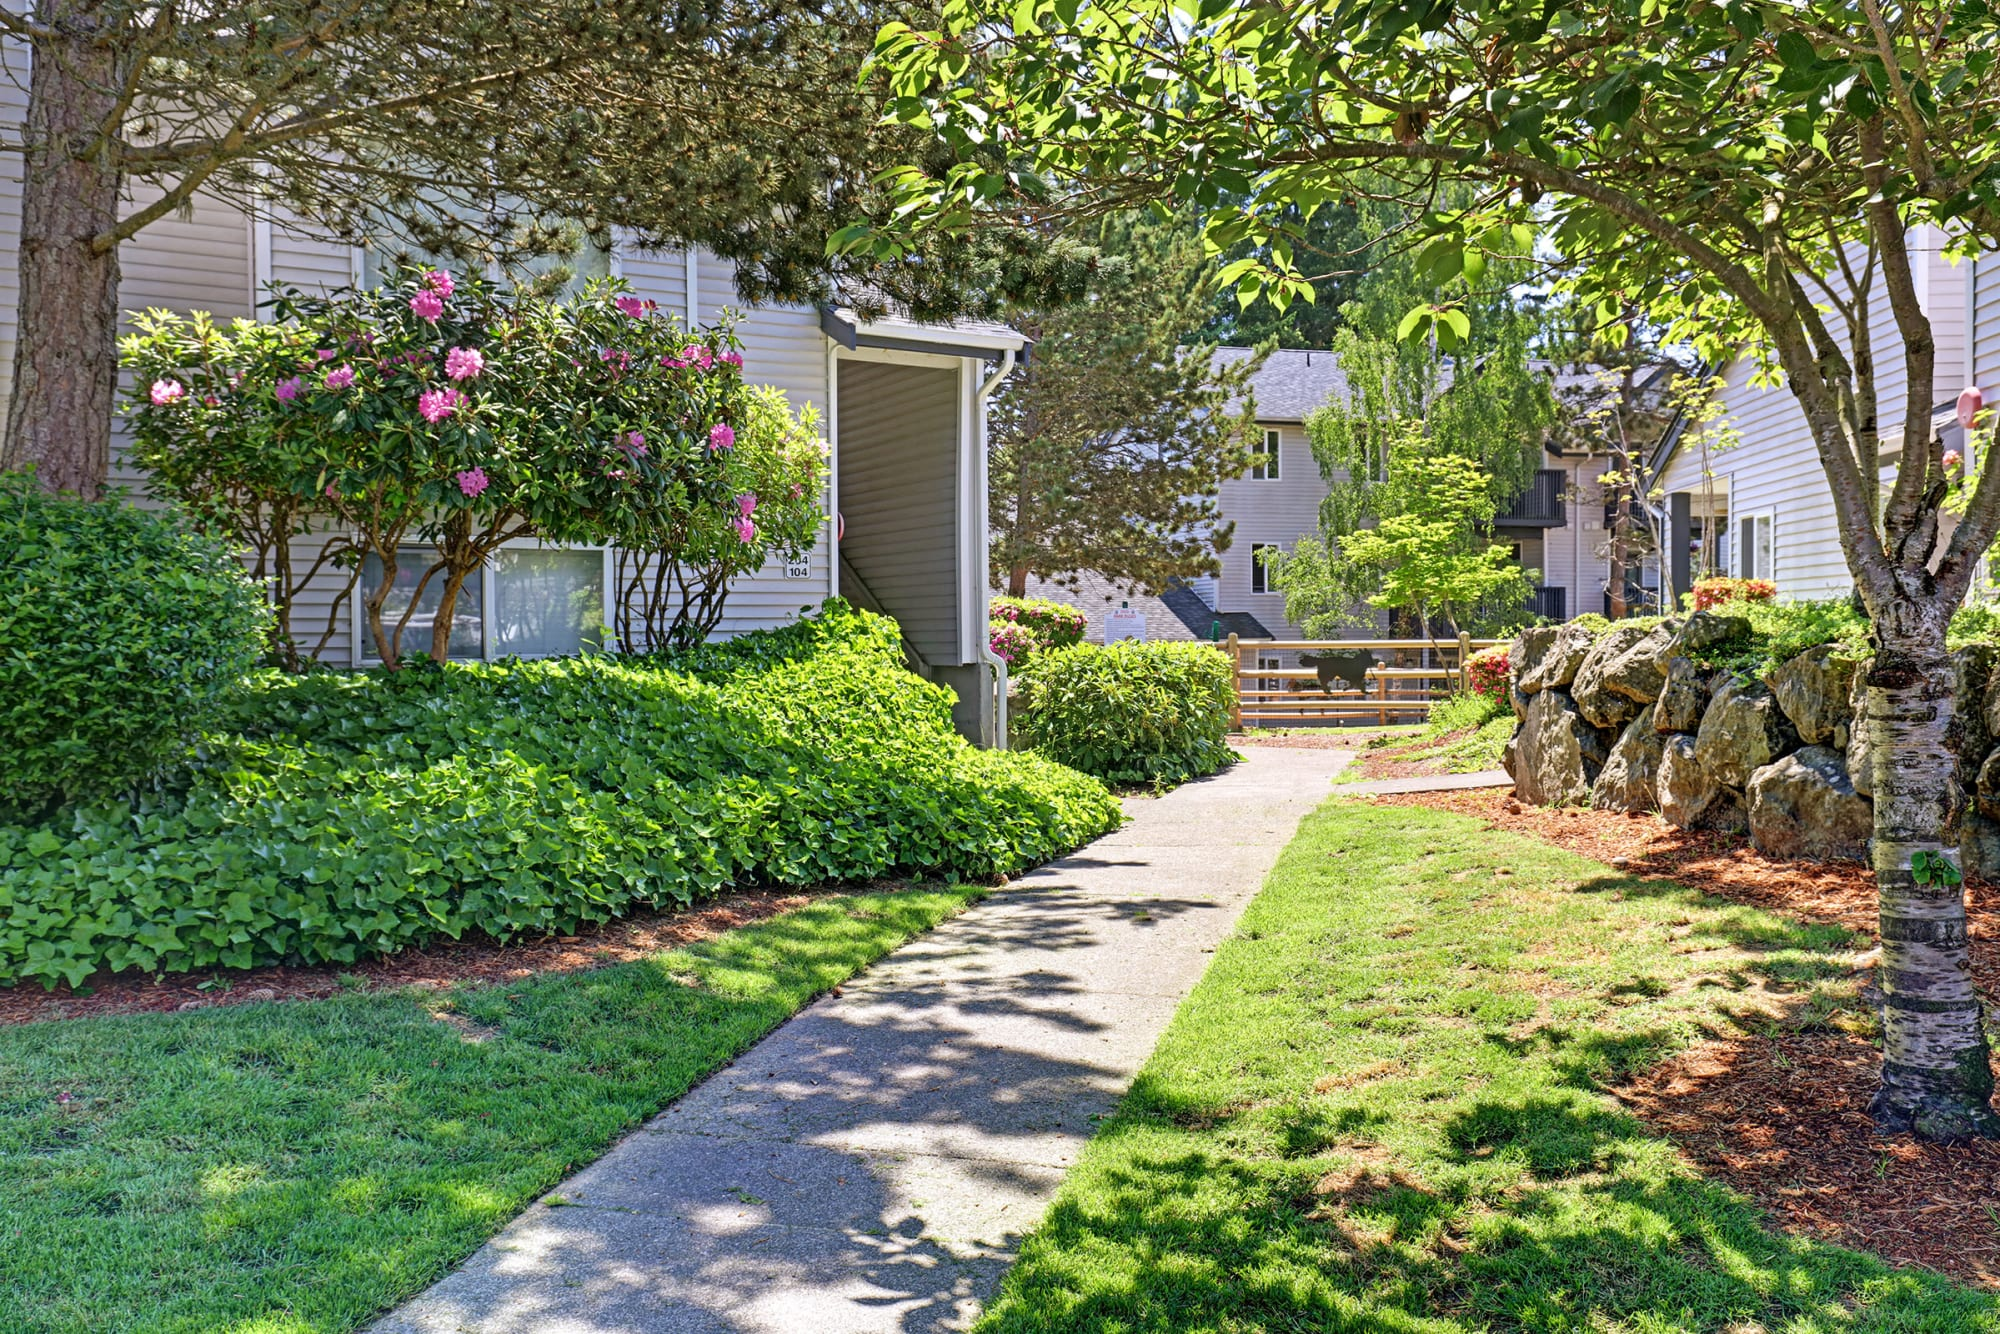 Enjoy being surrounded by beautiful landscaping at Cascade Ridge in Silverdale, Washington